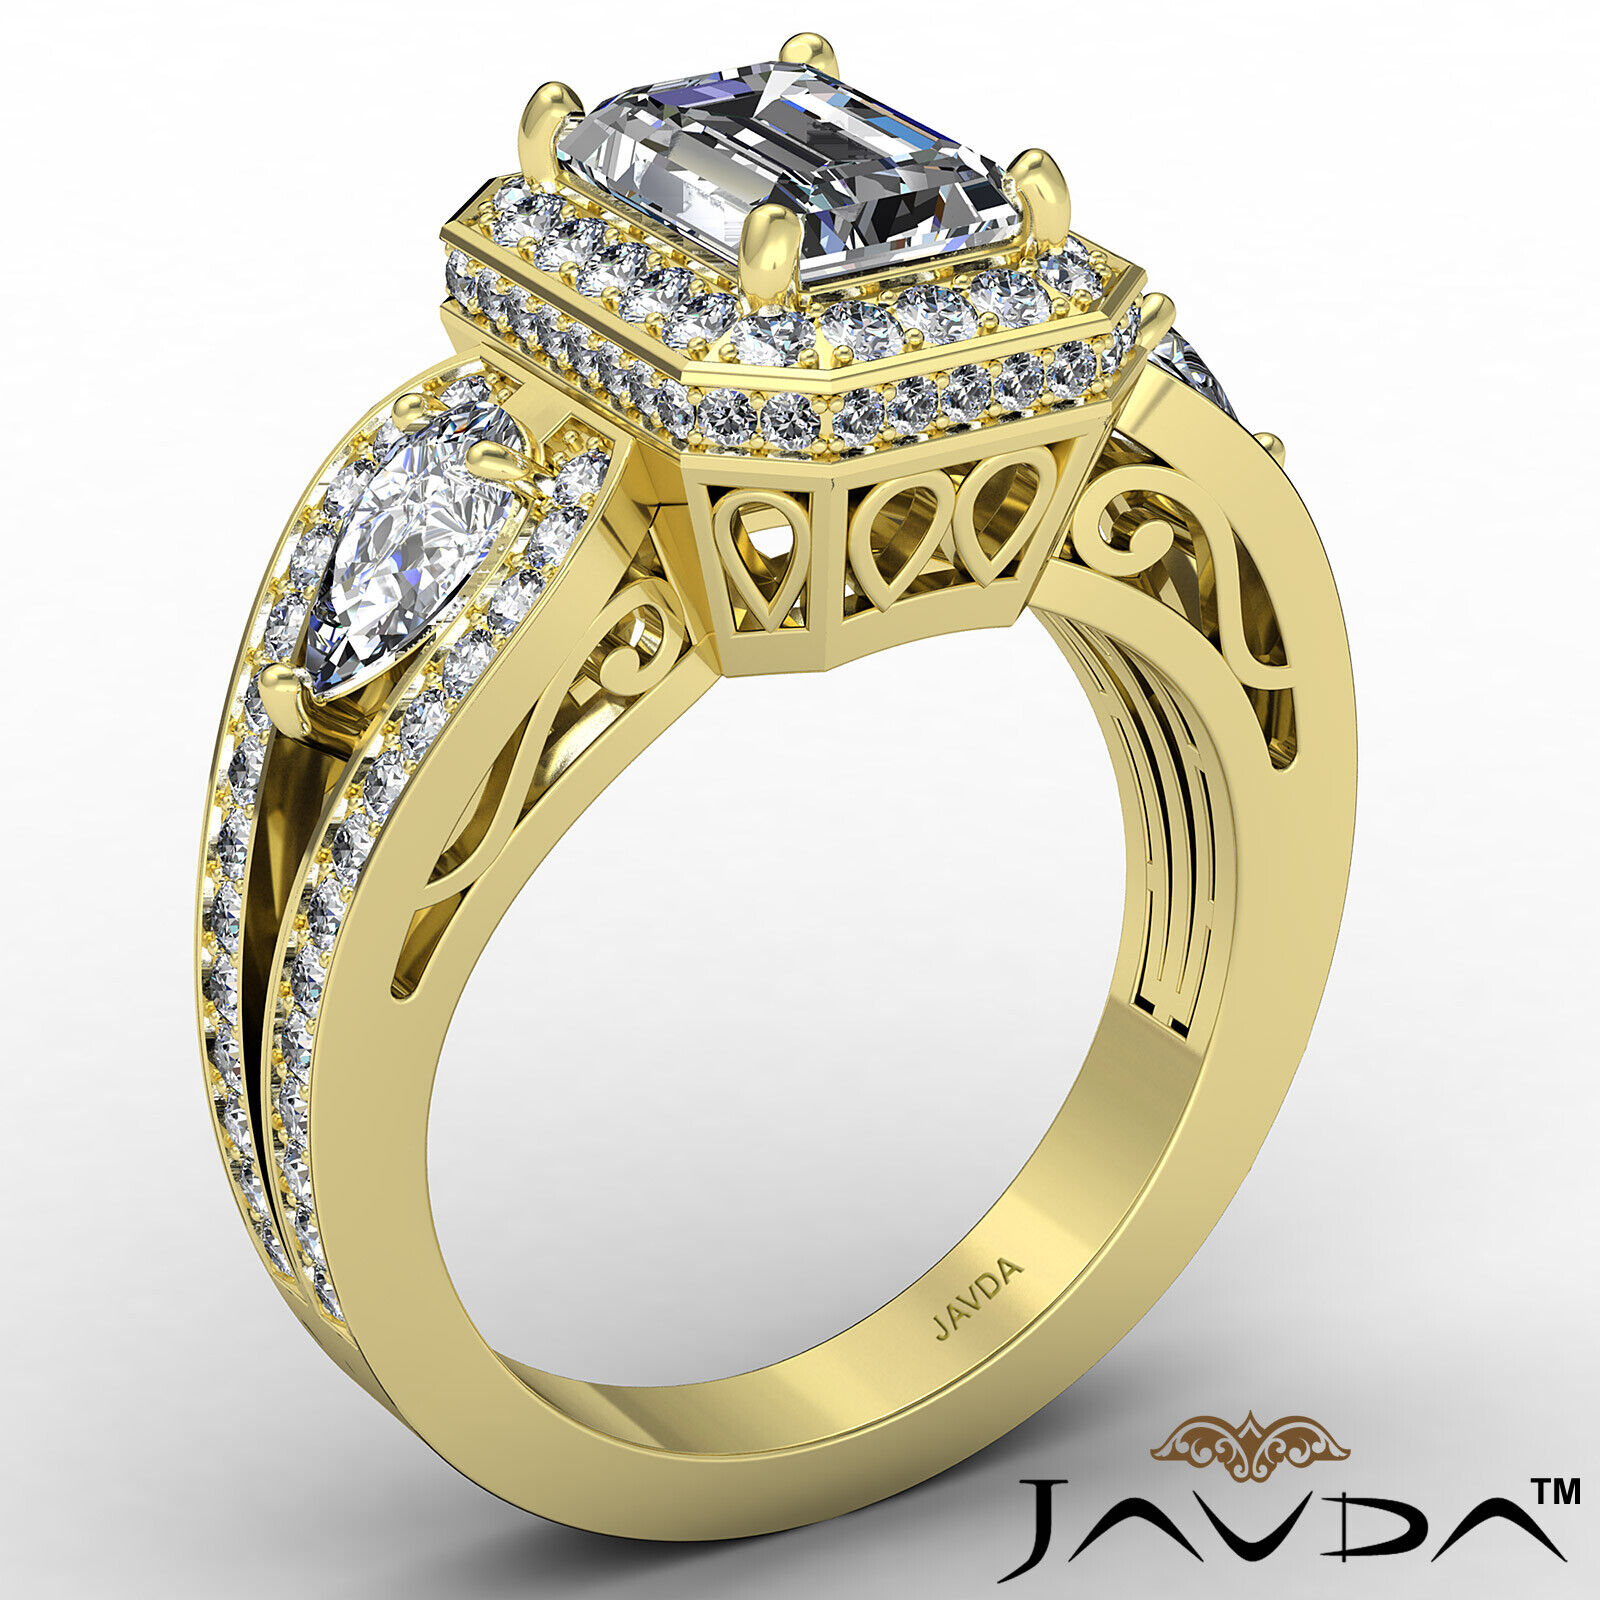 Halo Emerald Diamond Engagement Ring GIA Certified J Color & VS2 clarity 2.85ctw 4